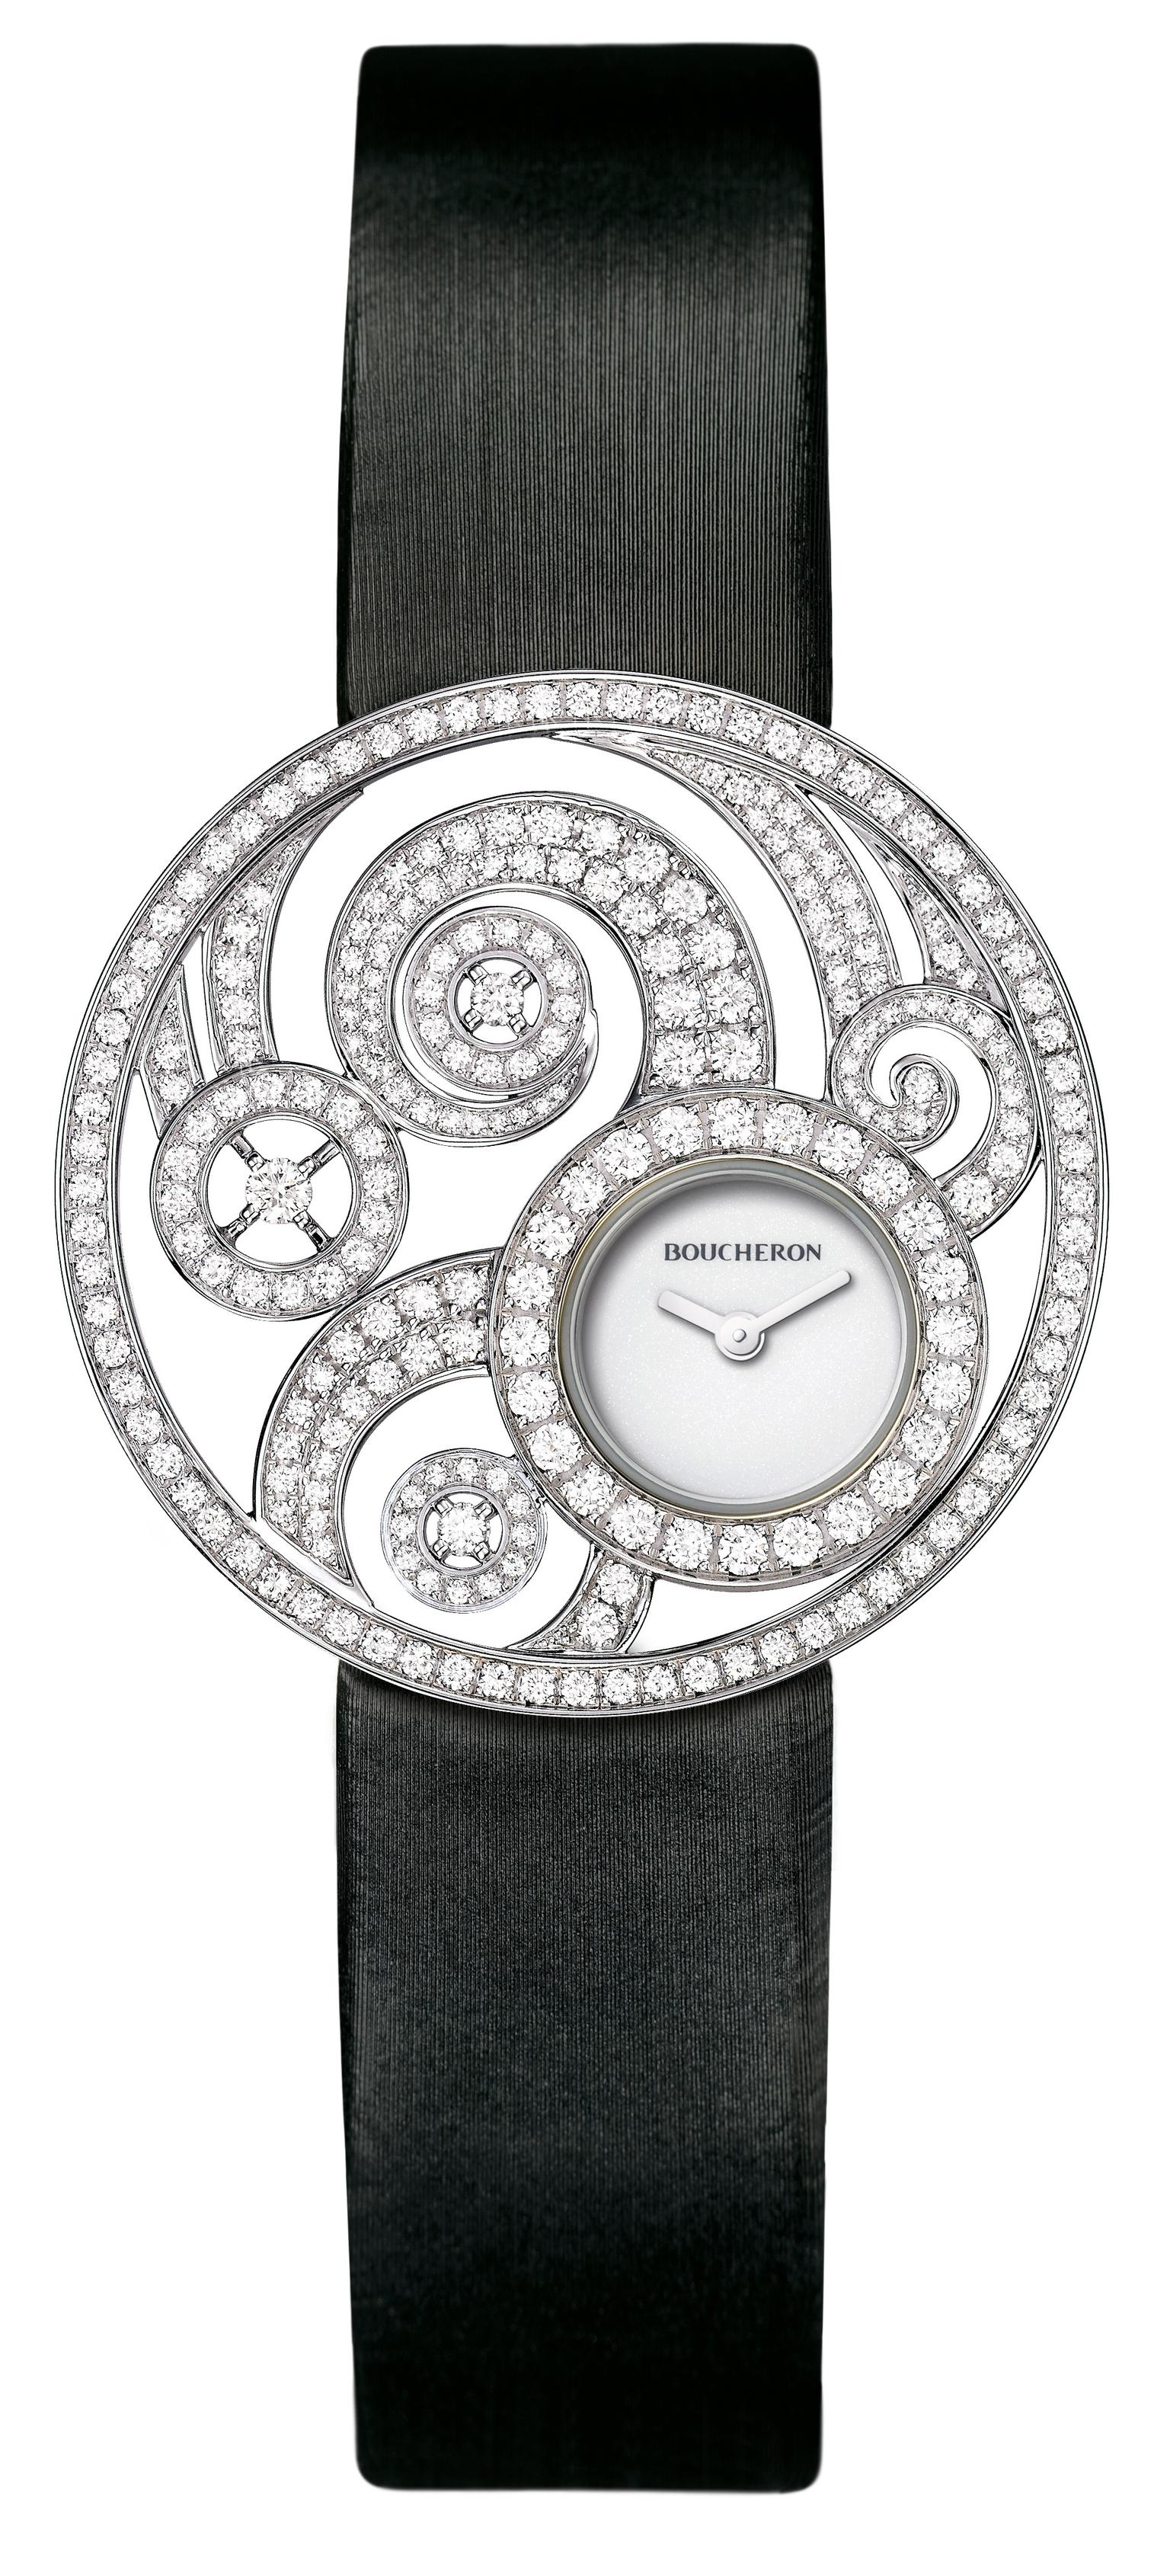 Boucheron Ajourée Volute watch